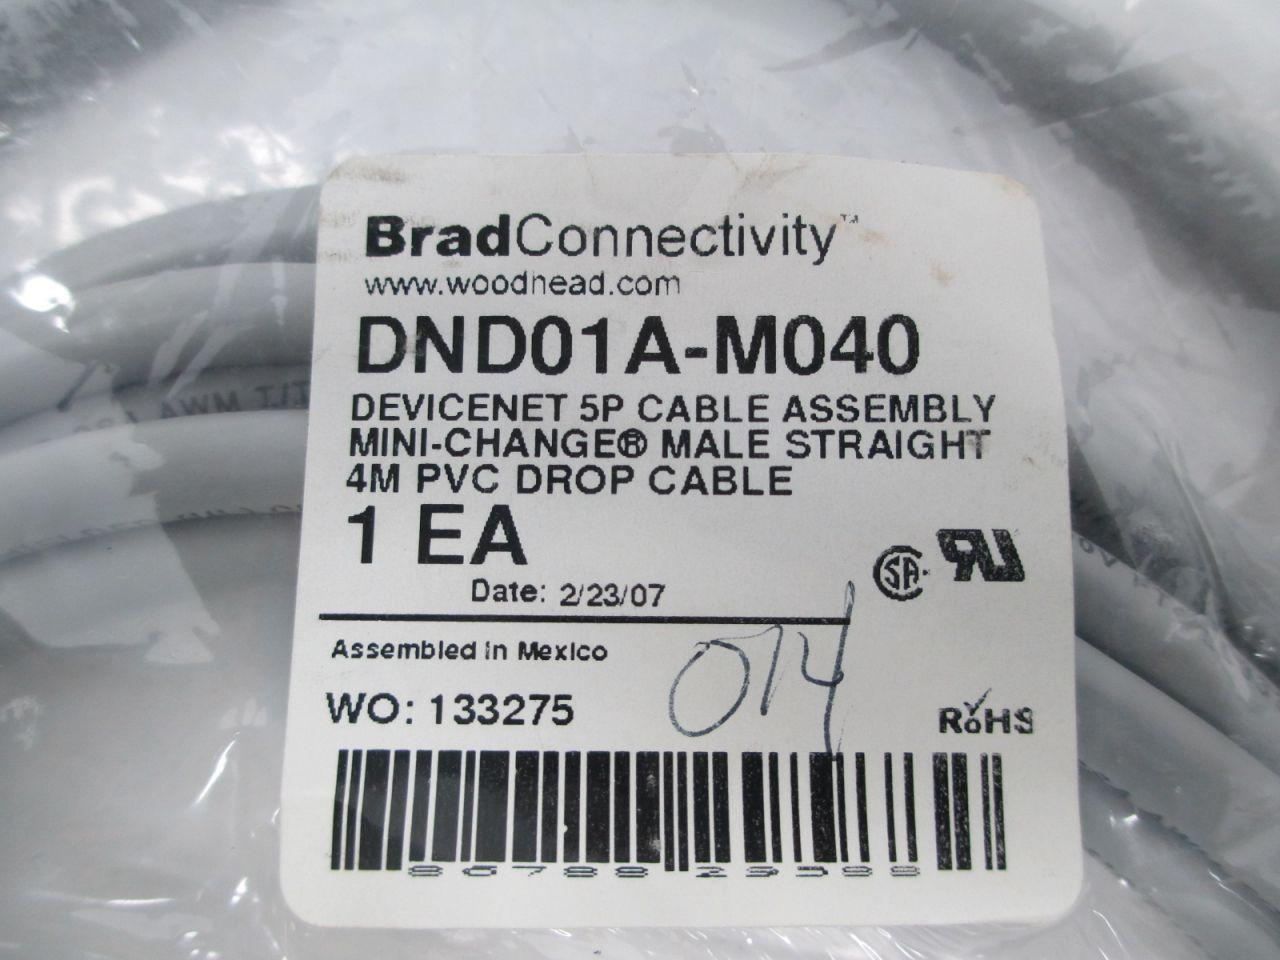 Mini-Change Male Staight 4M Brad Harrison DND01A-M040 Devicenet 5P Cable NEW